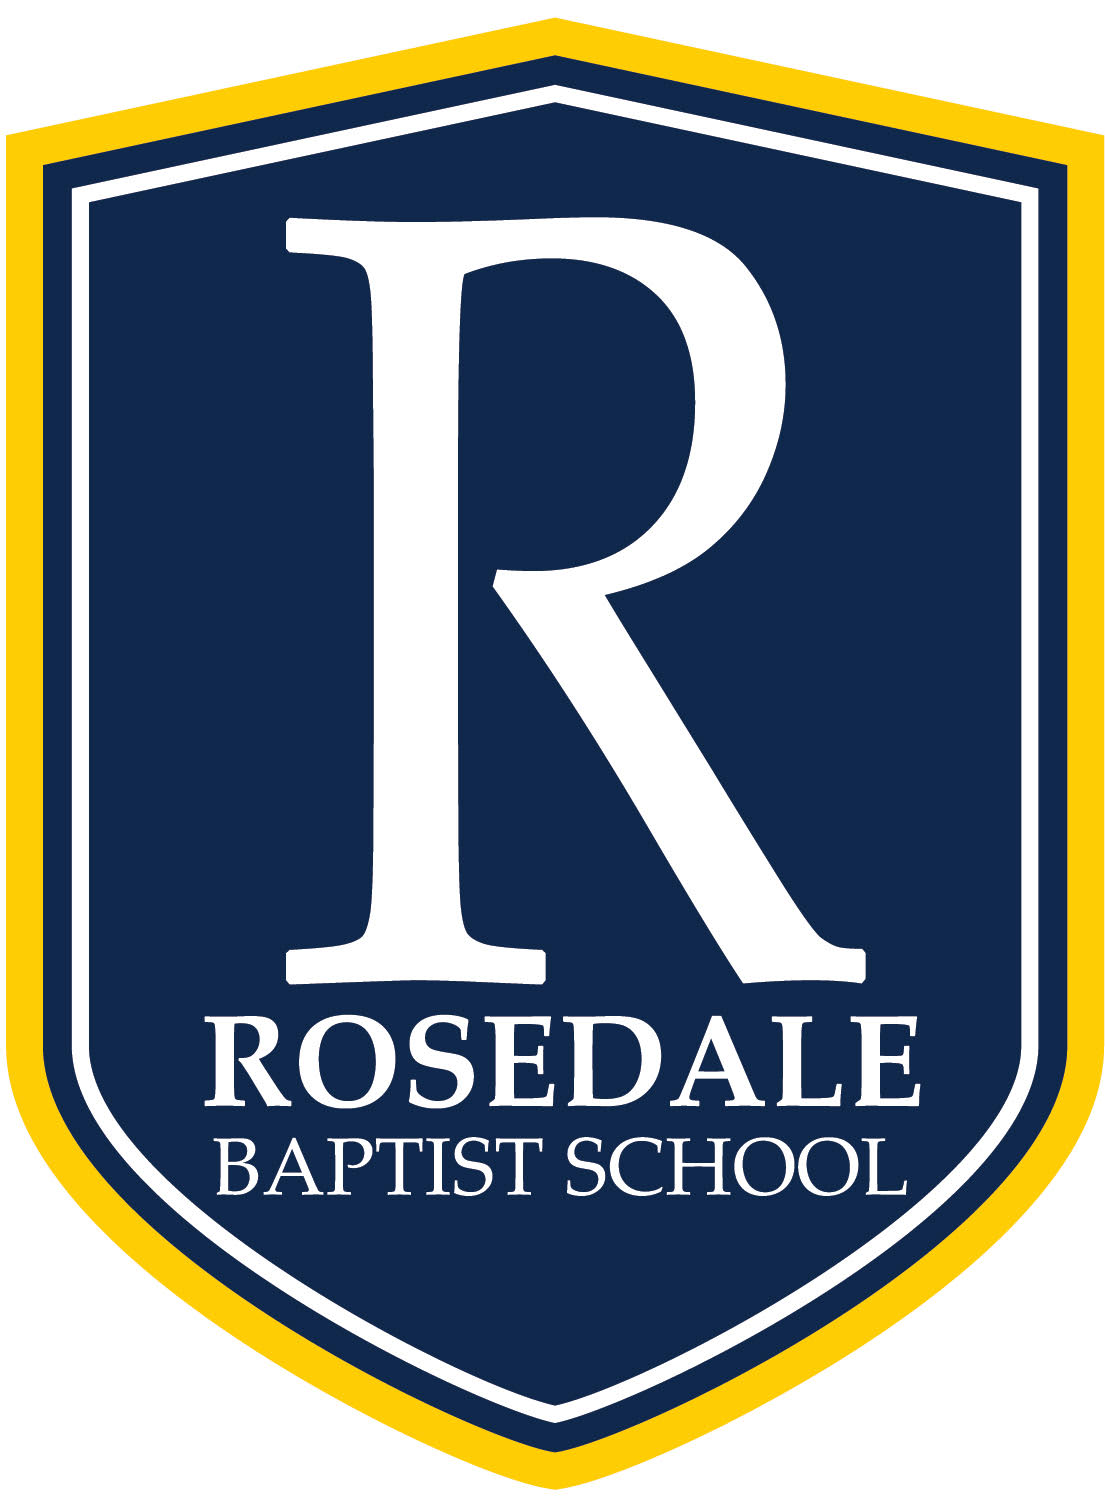 Rosedale Baptist School,  Baltimore, MD  The mission of Rosedale Baptist School is to partner with parents as we reach students for Christ; build them to their greatest potential in Him; and train them to serve the Lord and others